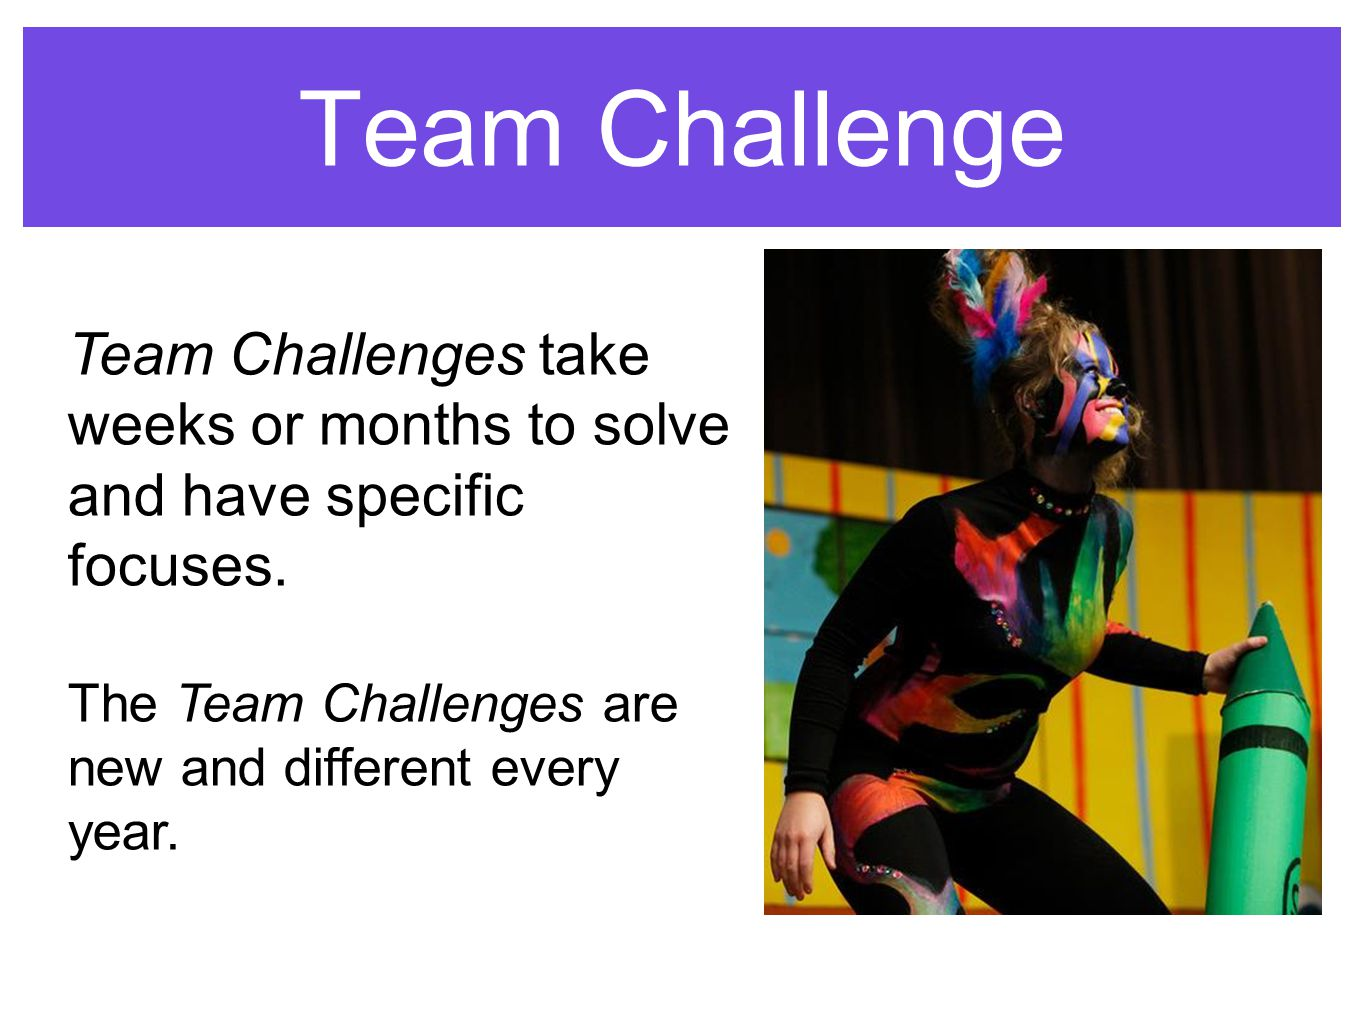 Team Challenge Team Challenges take weeks or months to solve and have specific focuses.